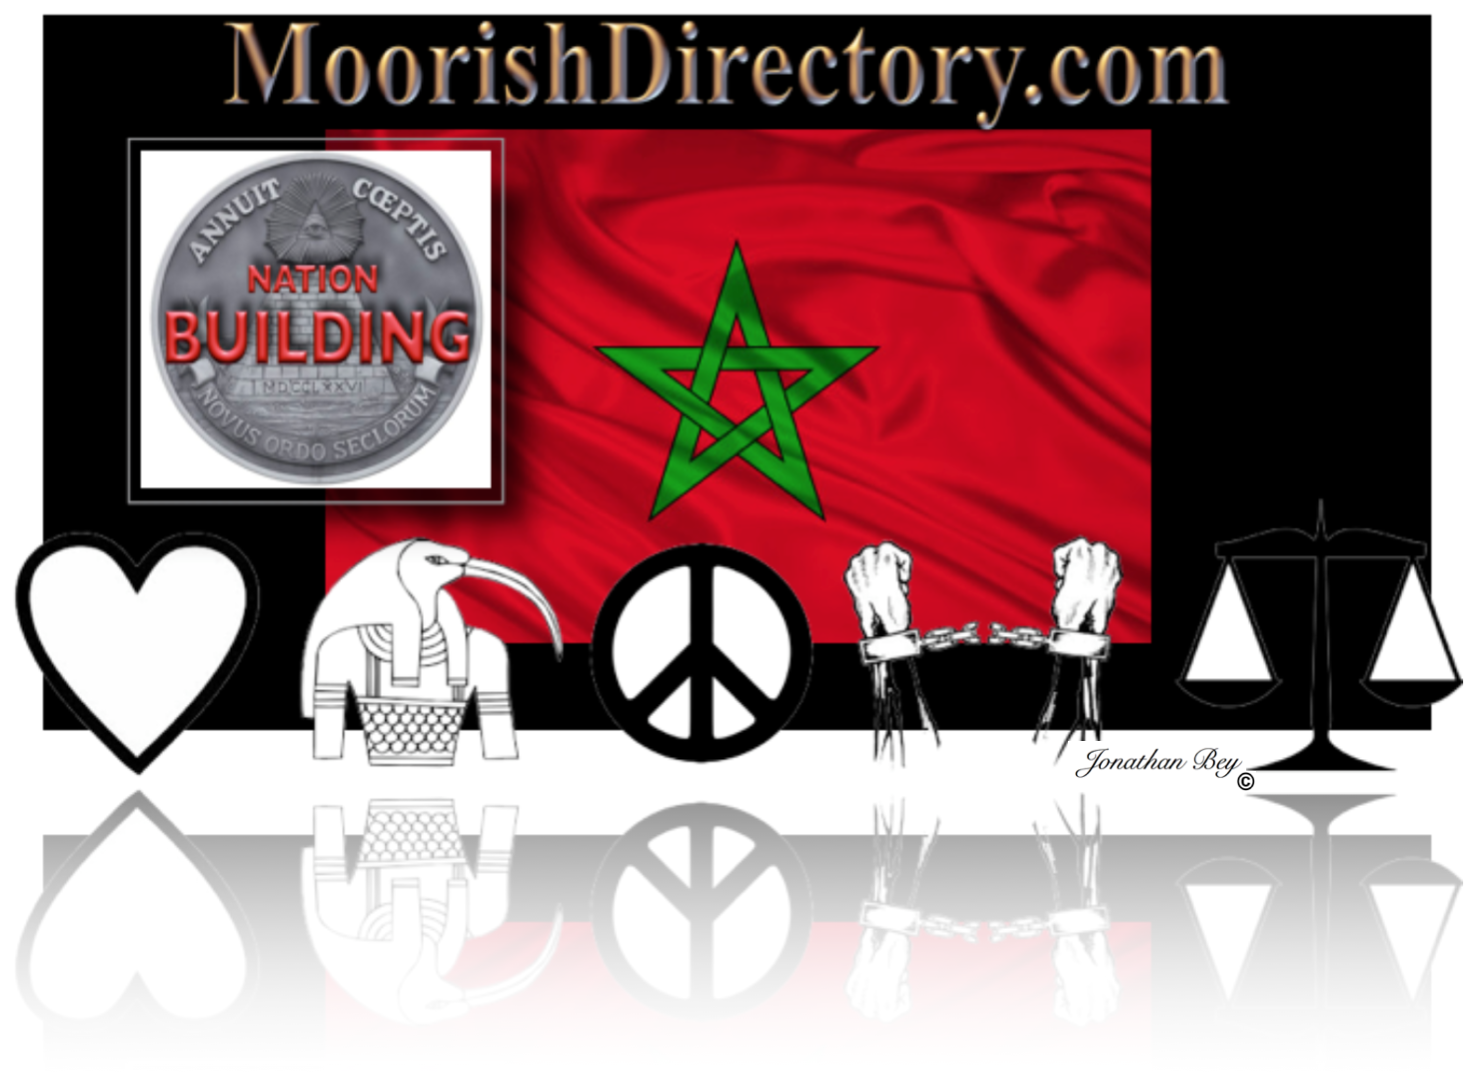 Moorish Directory ART